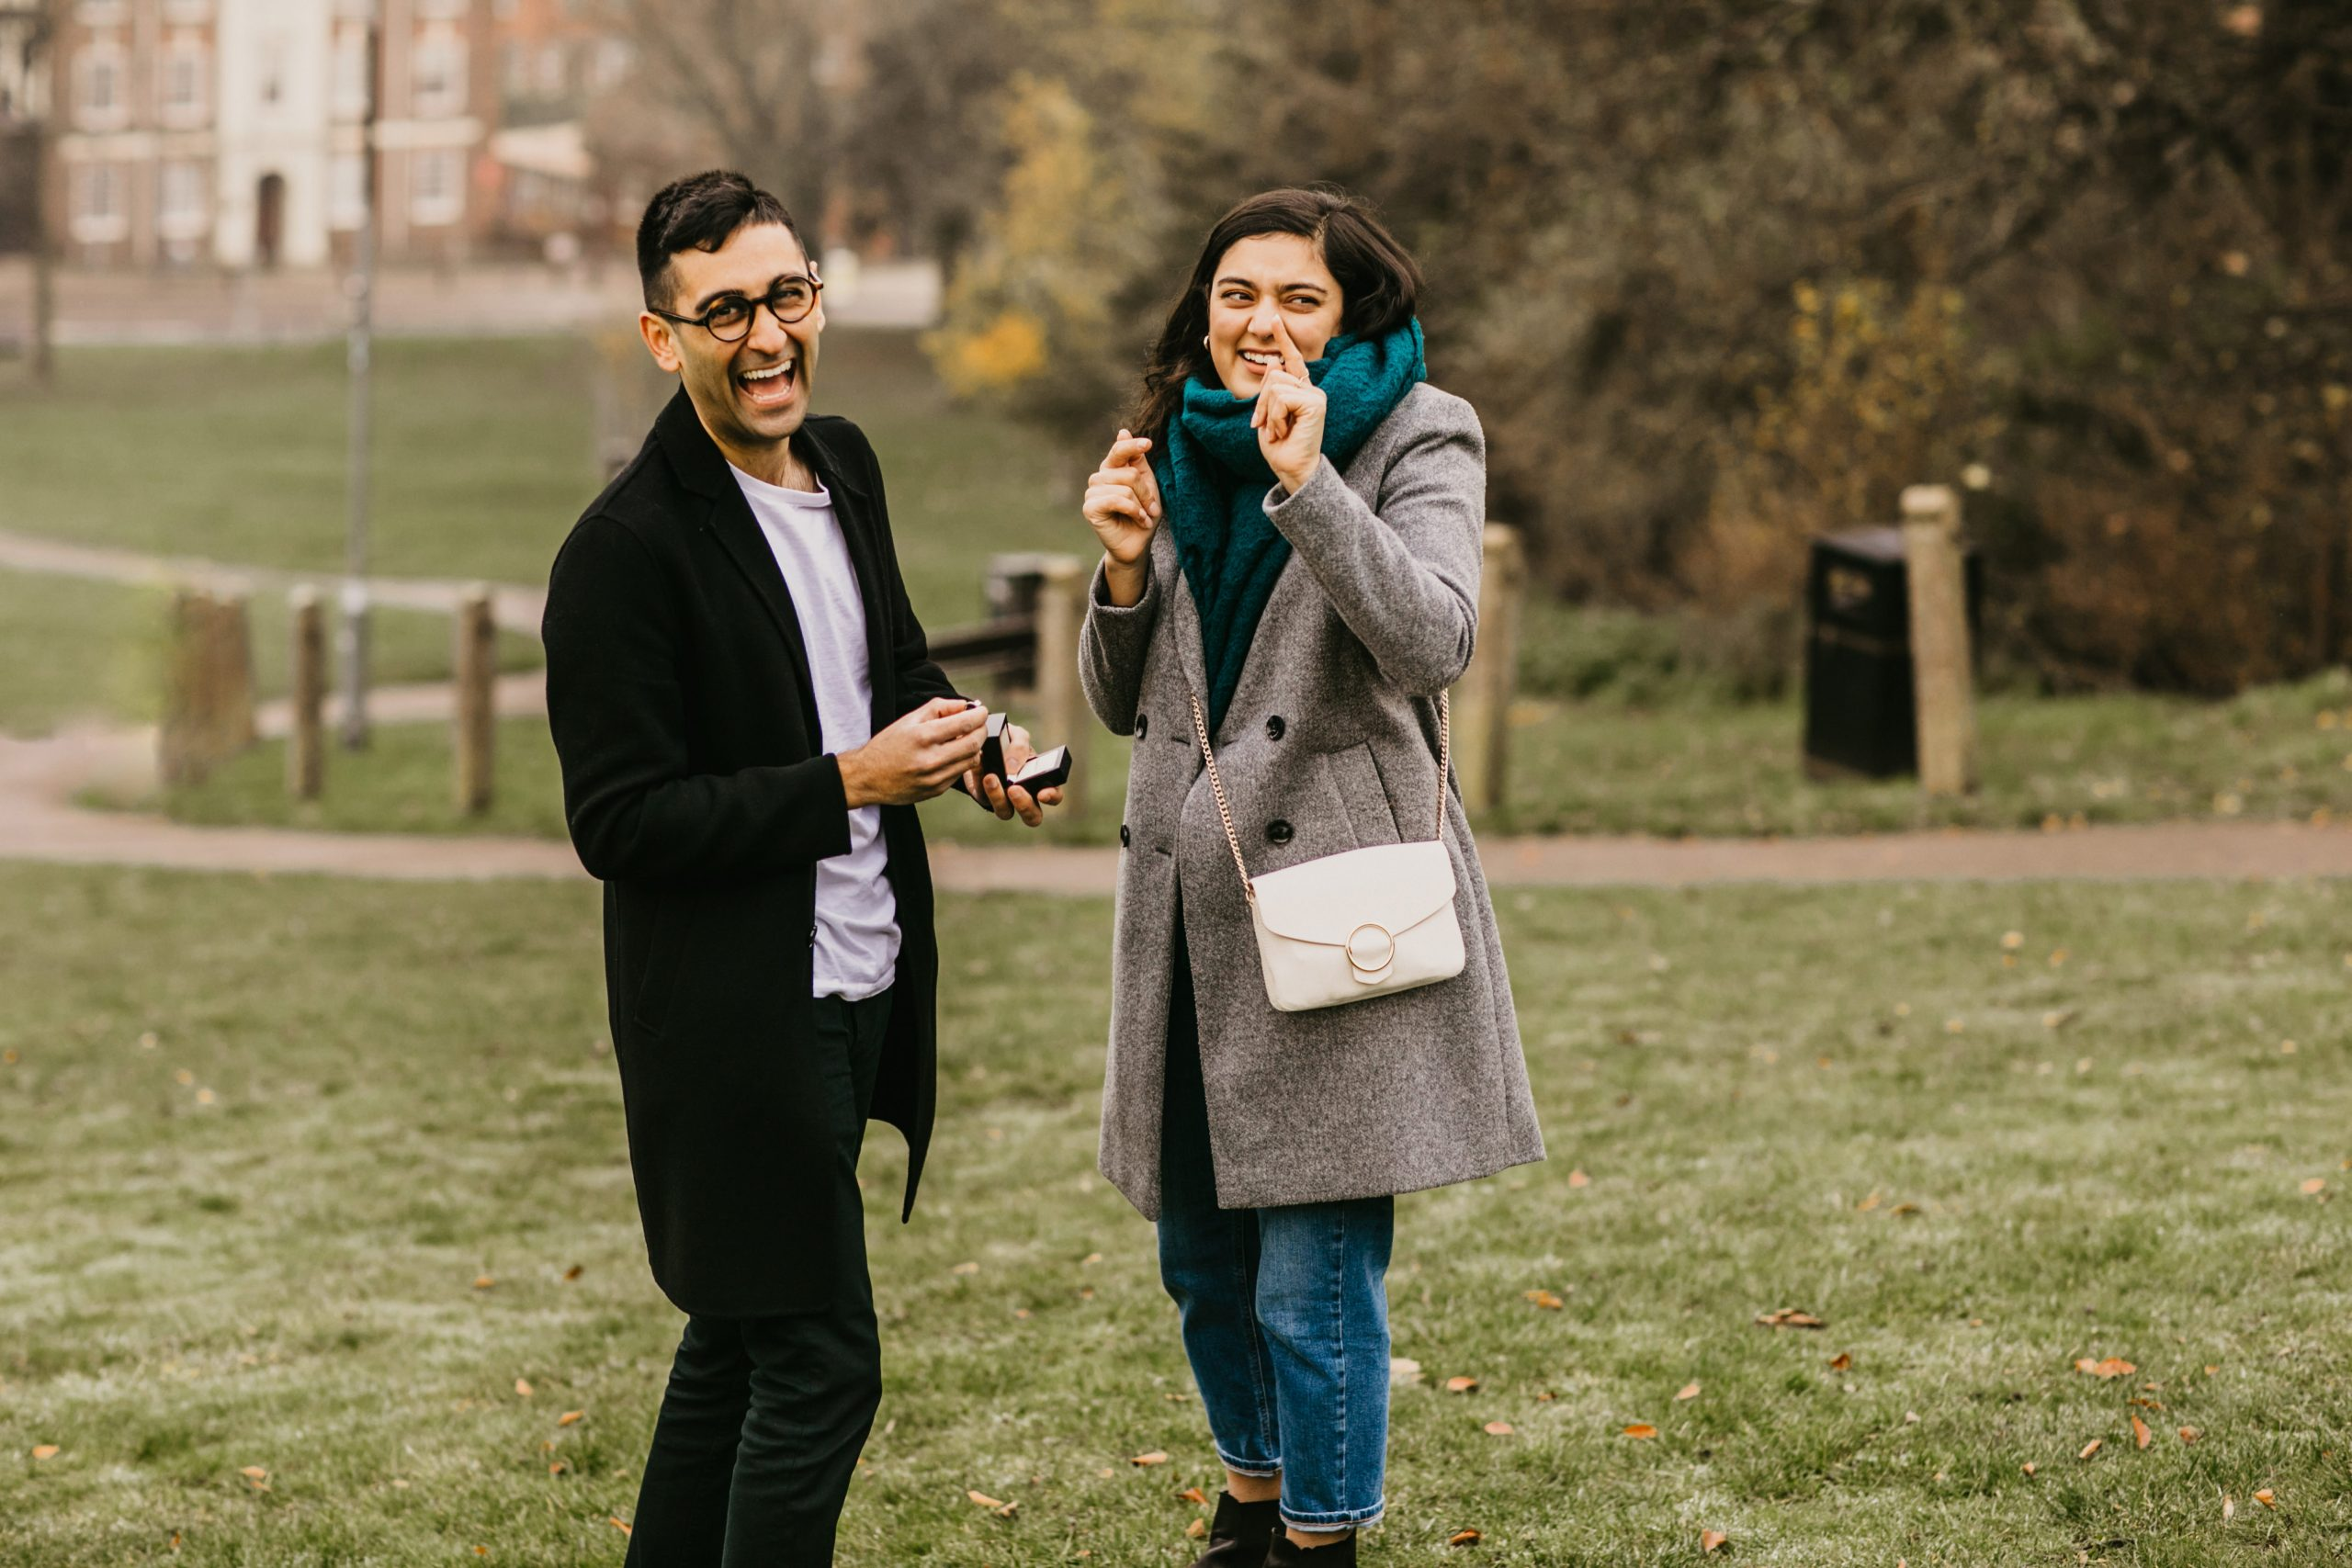 girl surprised by the camera during the proposal